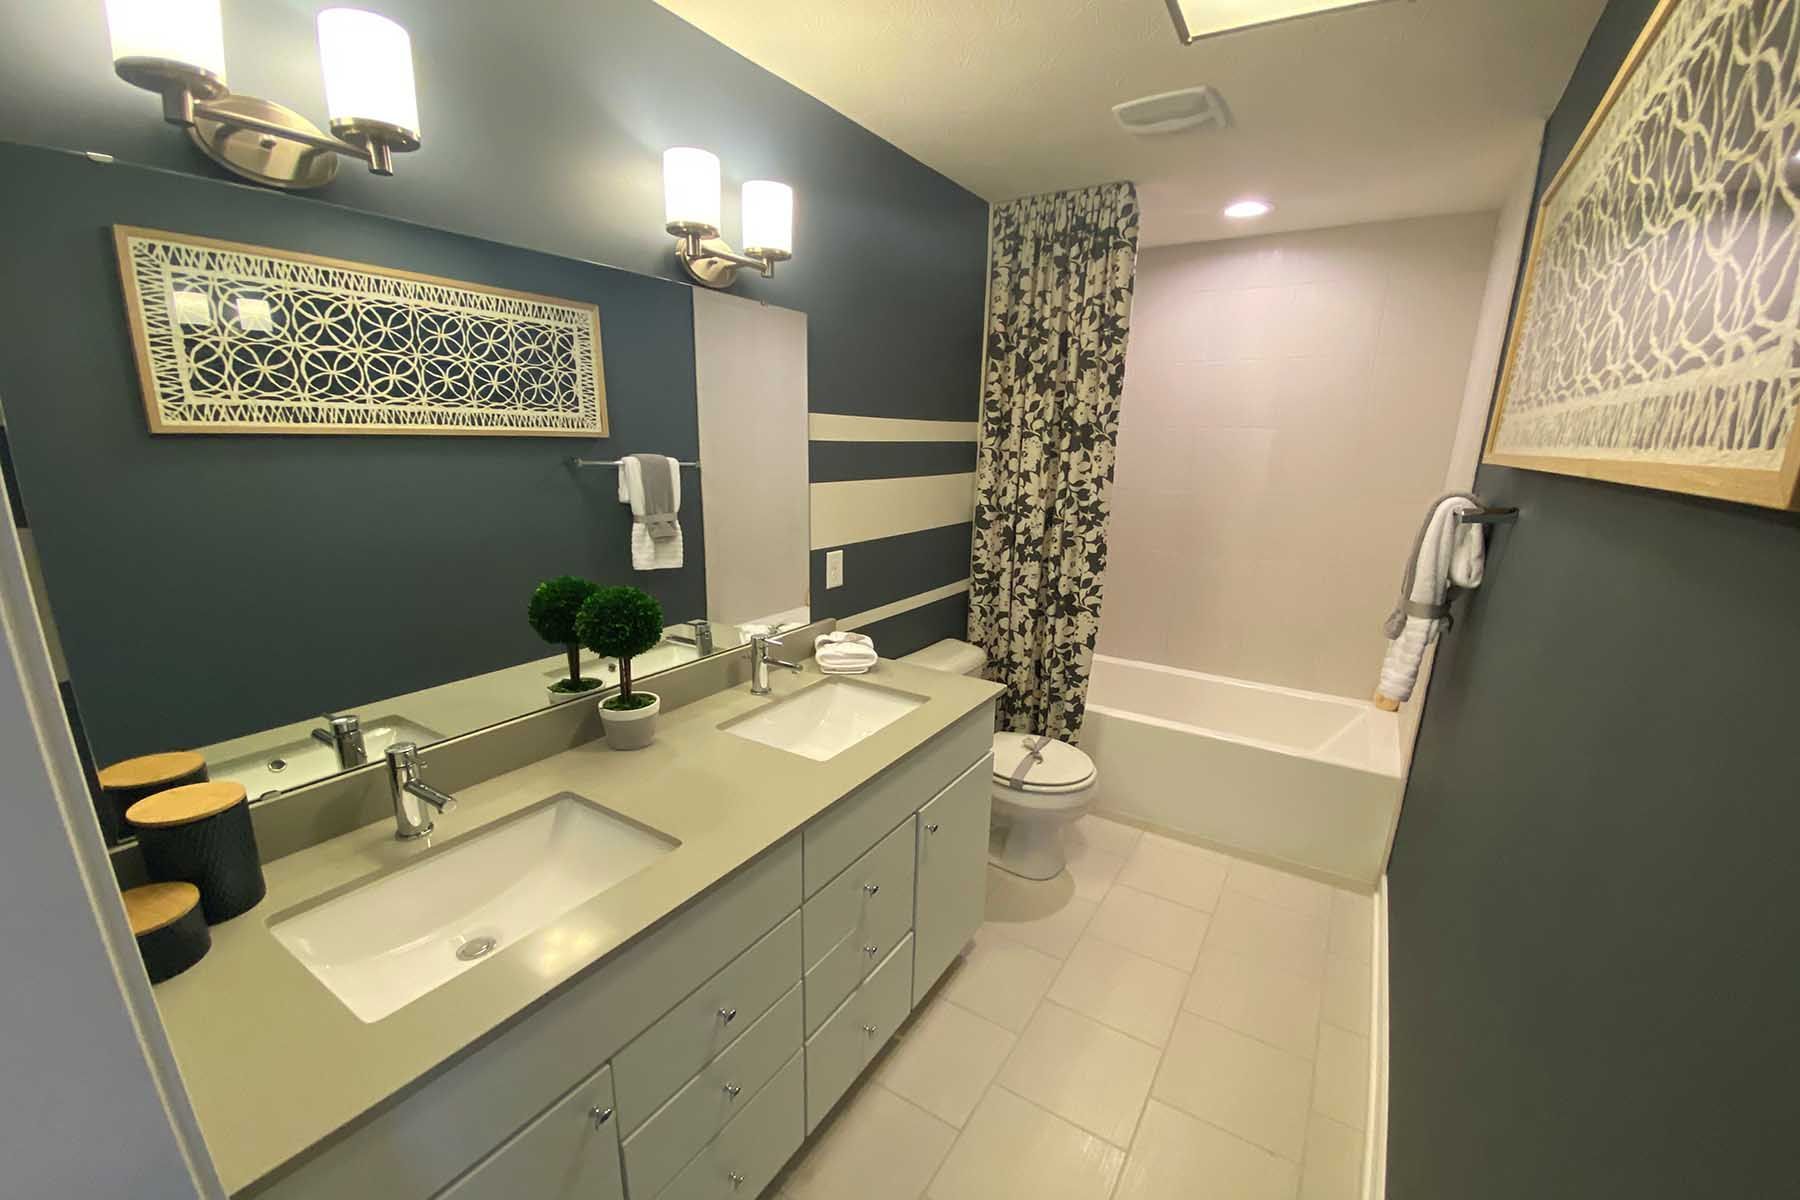 Bathroom featured in the R2050 By M/I Homes in Indianapolis, IN